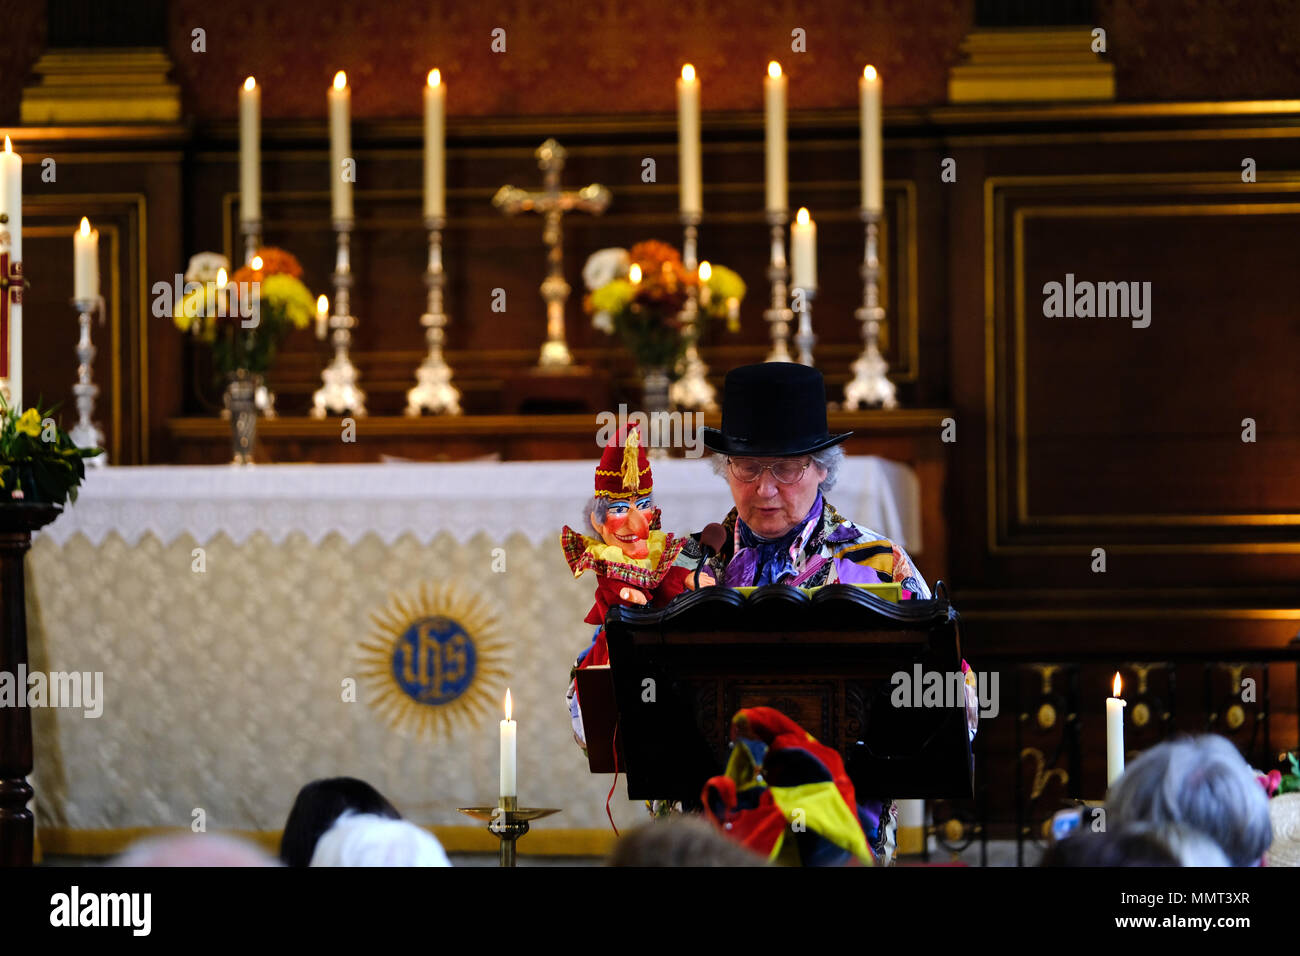 London, UK. 13th May 2018. Annual punch and Judy festival and church service in St Paul's Covent garden, Credit: Rachel Megawhat/Alamy Live News Stock Photo